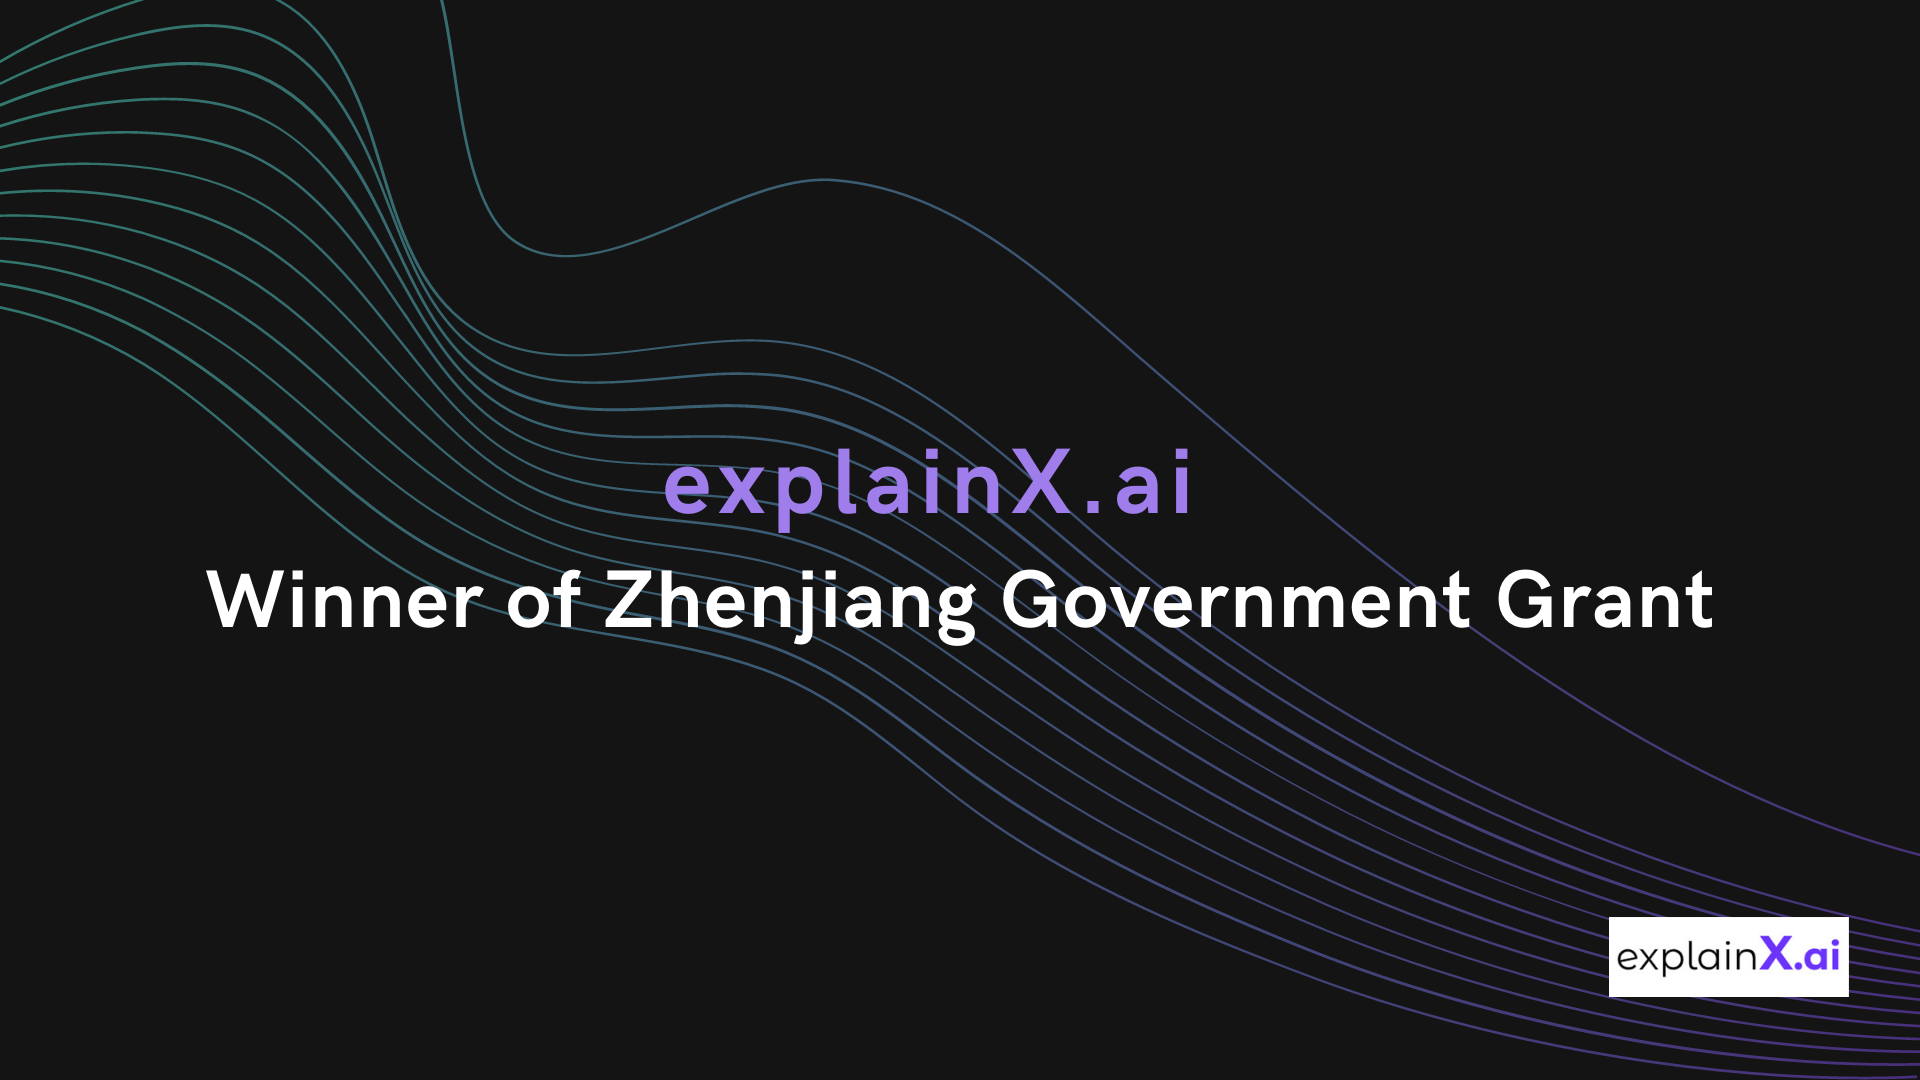 ExplainX.ai Wins 2020 Zhenjiang Government High-Tech Grant